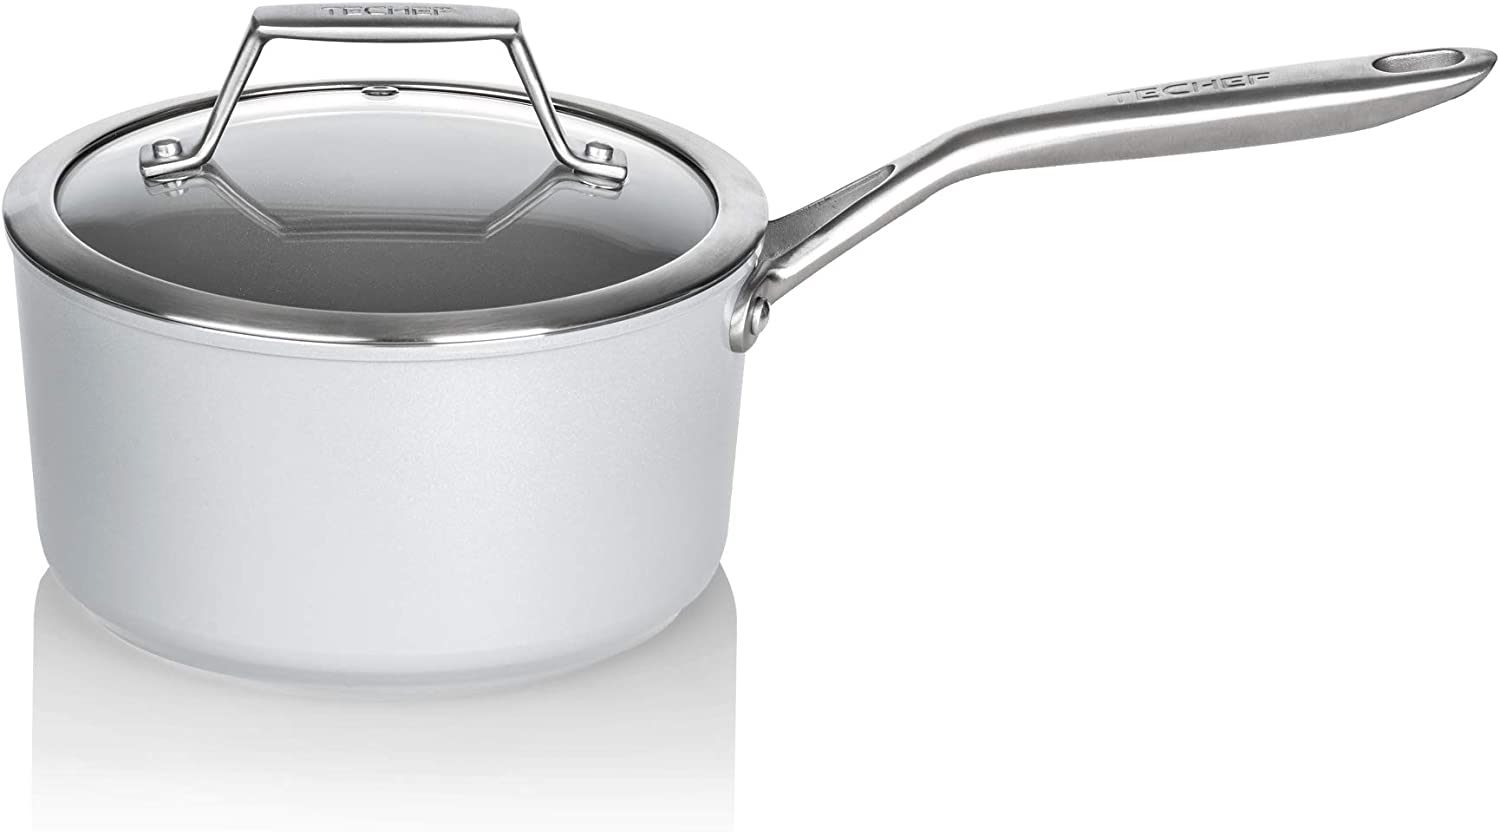 TECHEF CT CeraTerra 2-quart Ceramic Nonstick Saucepan with Glass Lid (PTFE and PFOA Free), Oven & Dishwasher Safe, Made in Korea, Grey/Silver